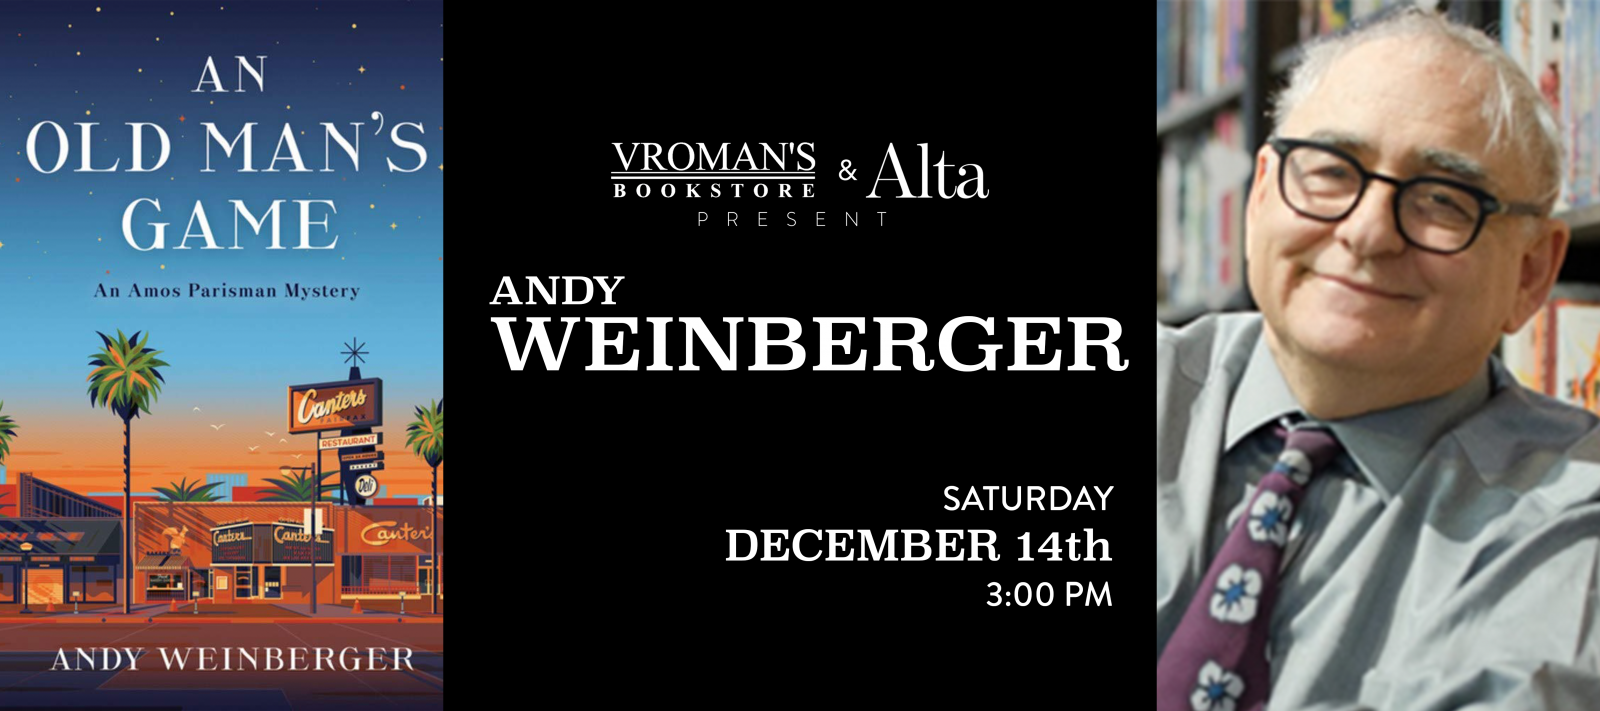 Andy Weinberger book signing Saturday December 14th at 3pm